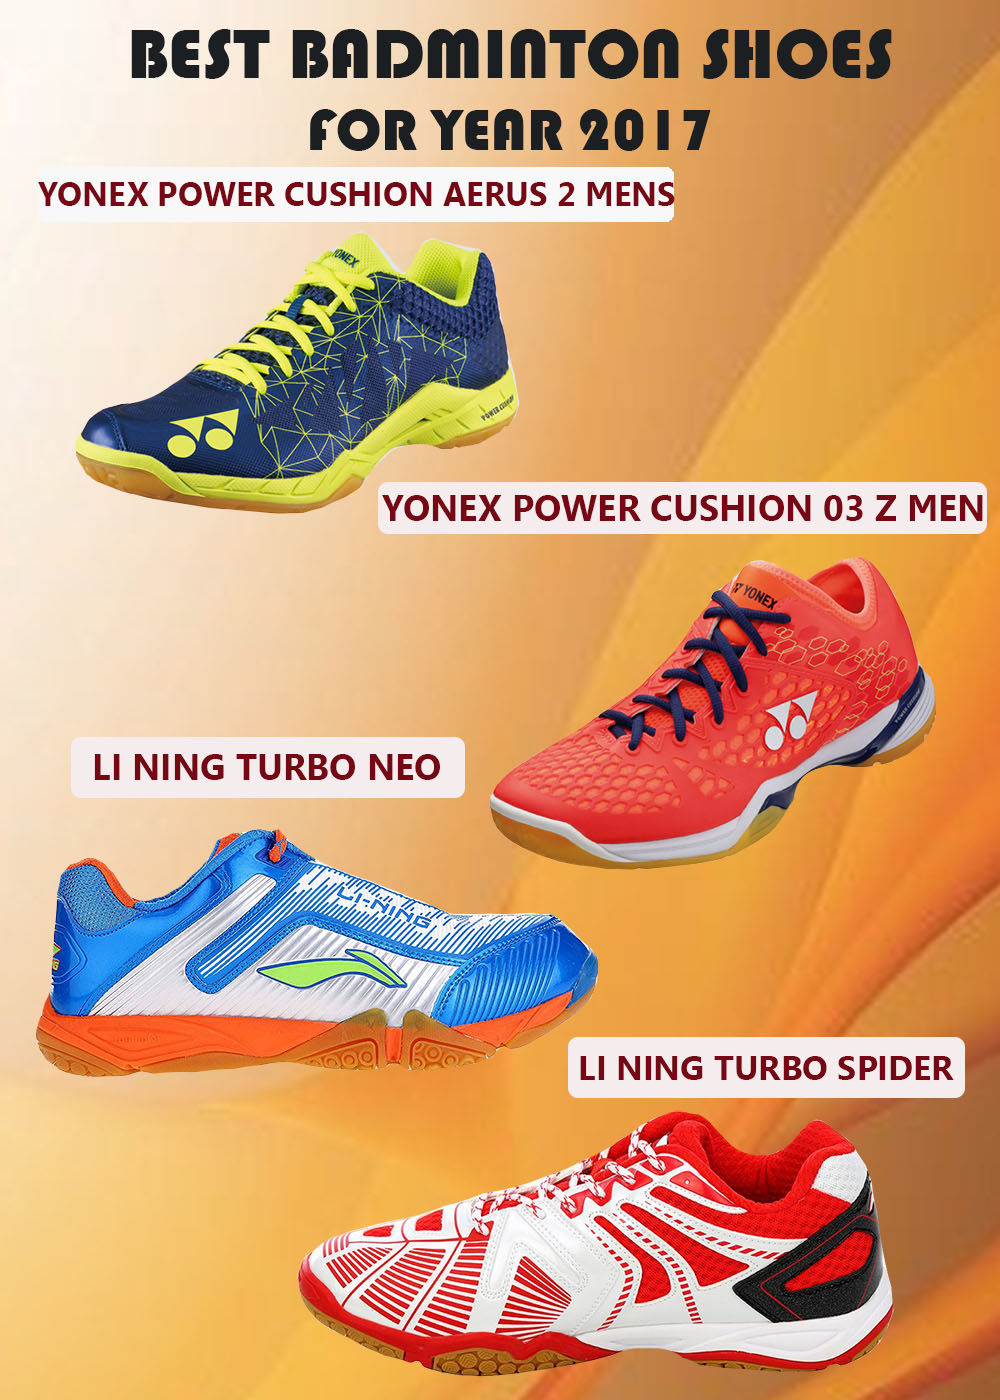 BEST BADMINTON SHOES FOR YEAR 2017_1